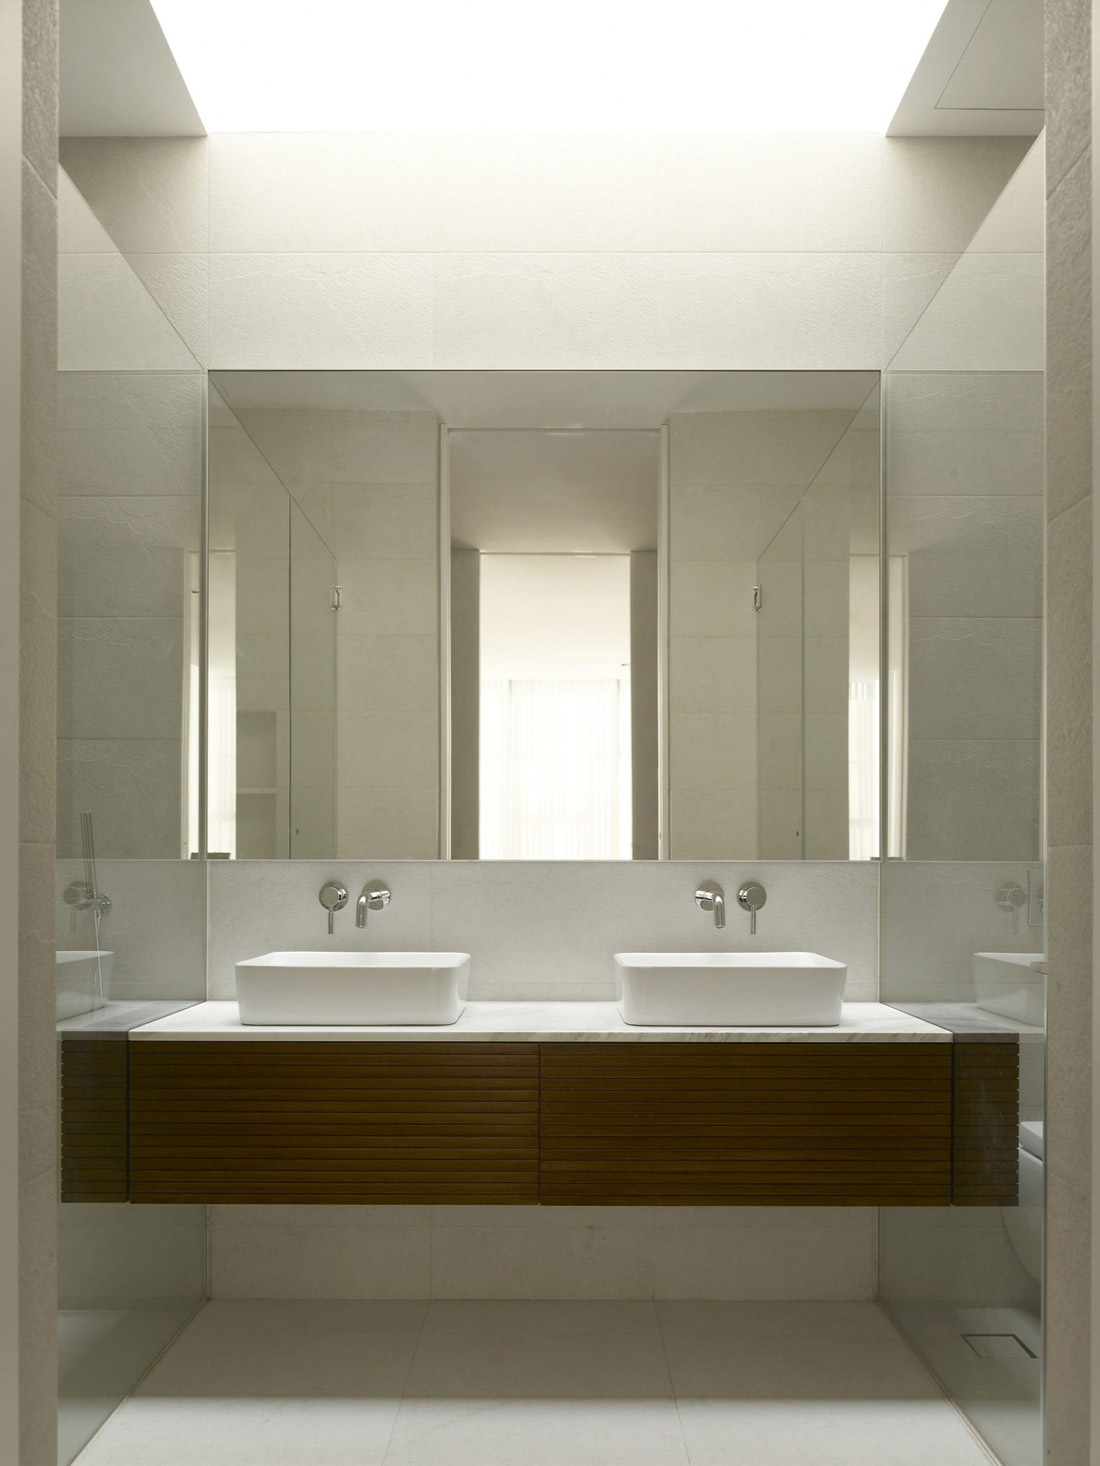 Twin Bathroom Sinks : Twin Sinks, Minimalist Contemporary Home in Singapore